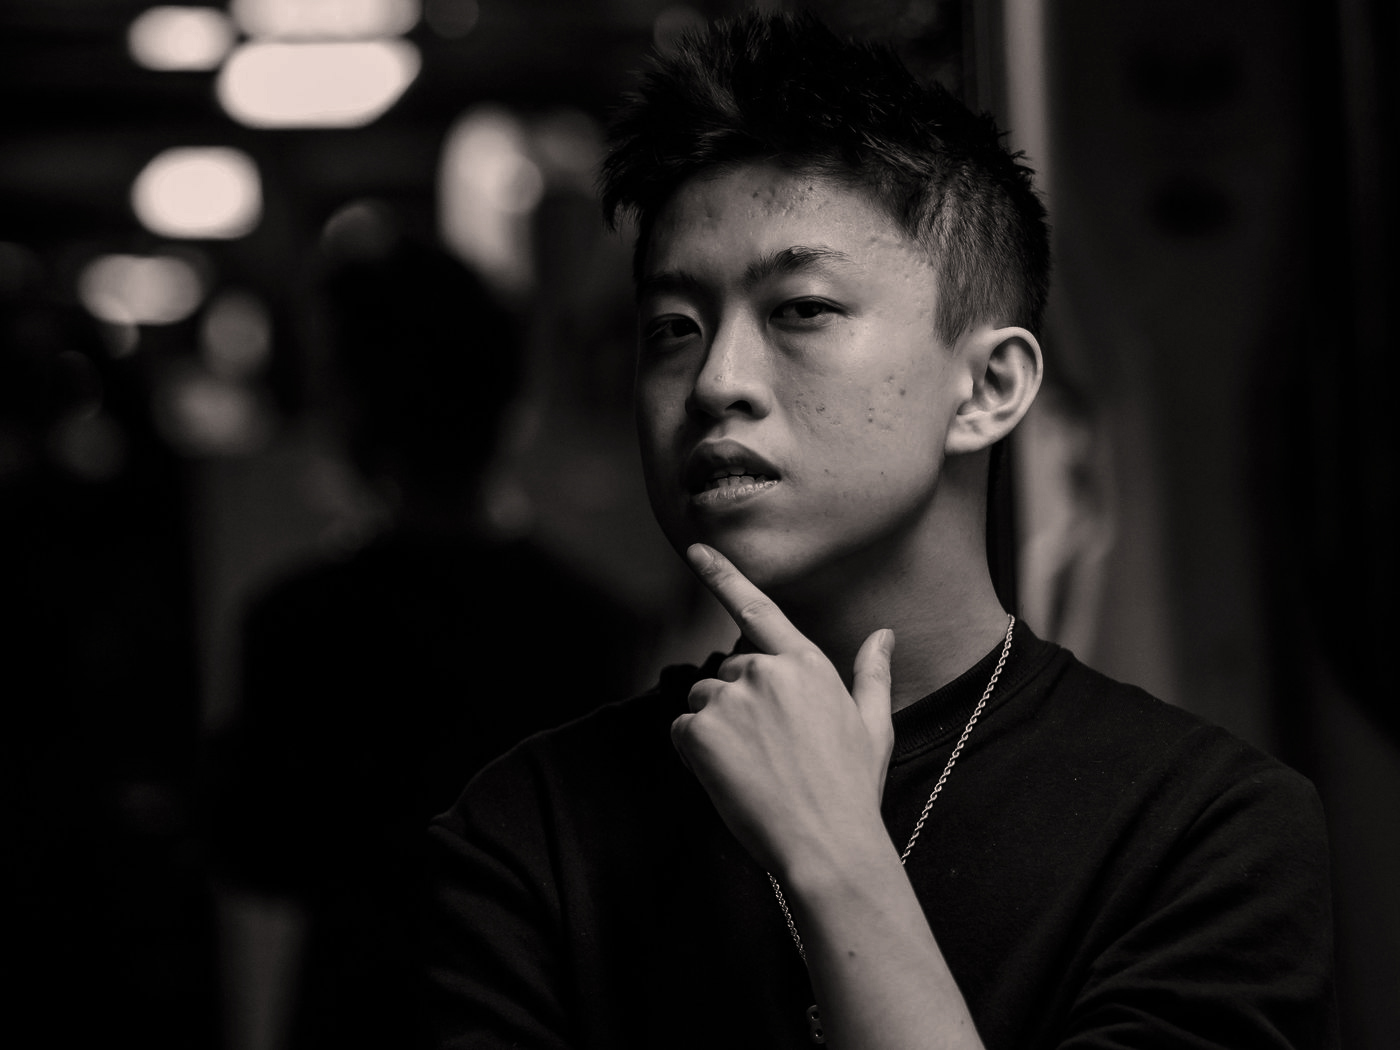 Rich Chigga - Rich Chigga became a sensation felt across the globe; working with the likes of Skrillex, Diplo, Young Thug and Keith Ape to produce chart-topping tracks.Collective Minds organised his sold out show in Hong Kong.